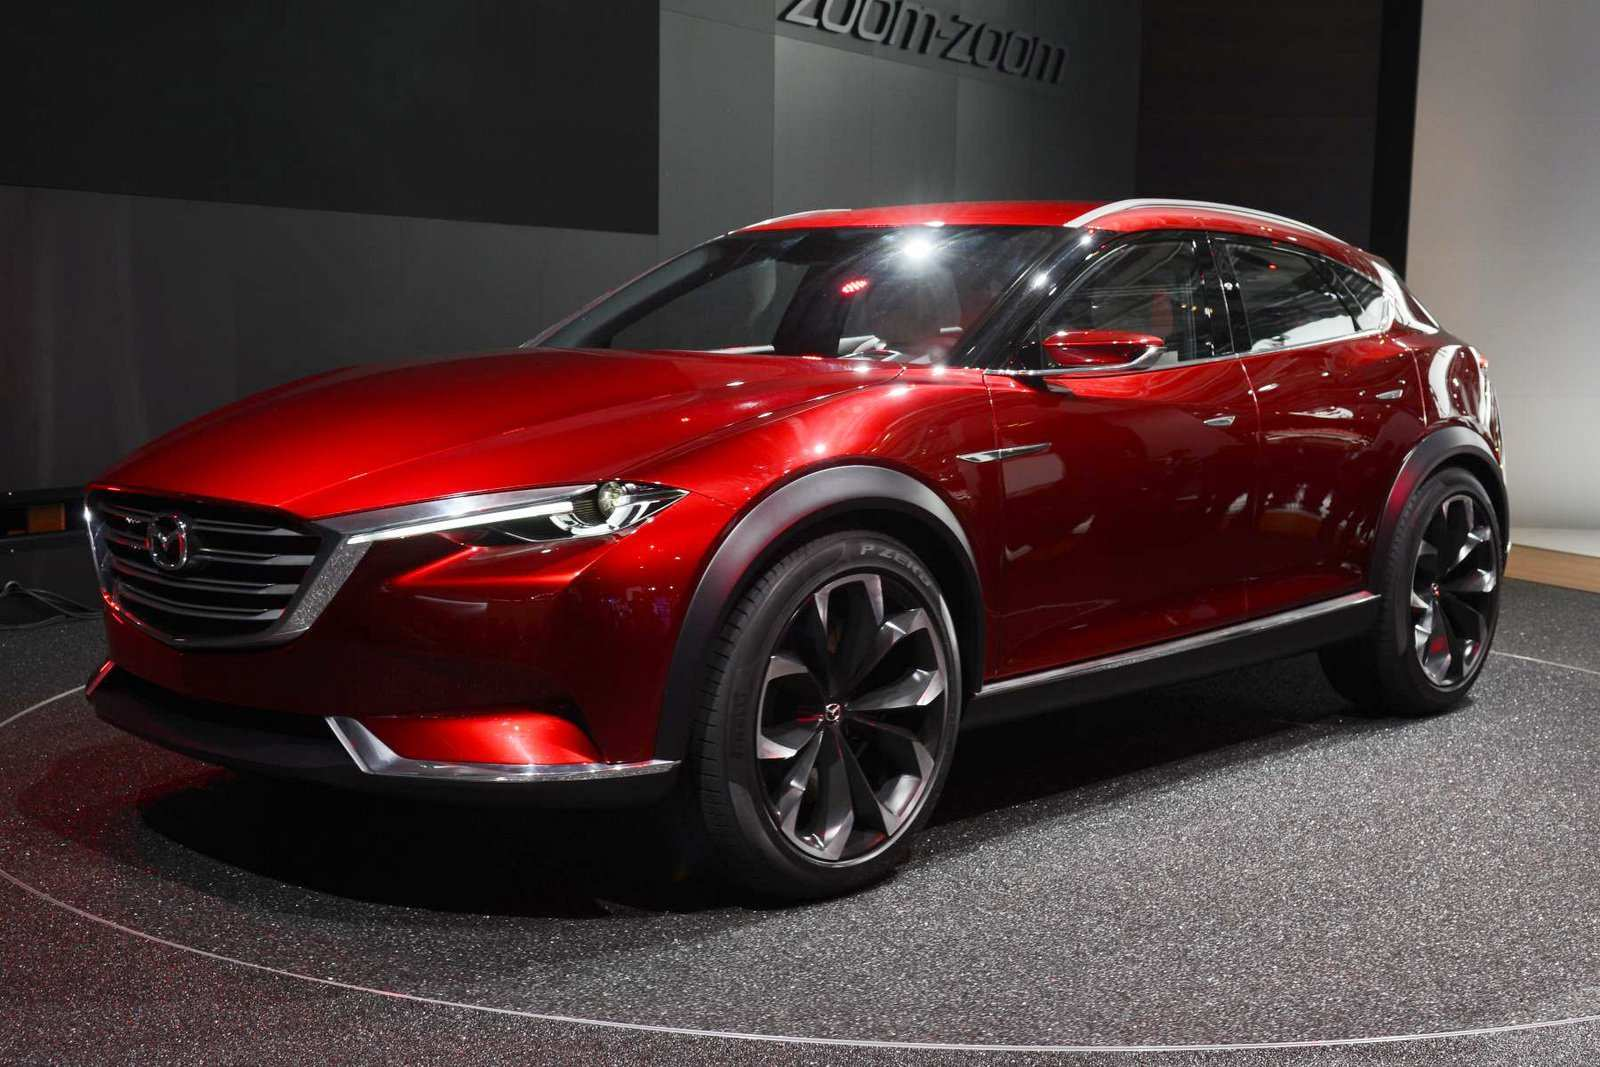 50 Great Mazda Auto 2020 Configurations with Mazda Auto 2020